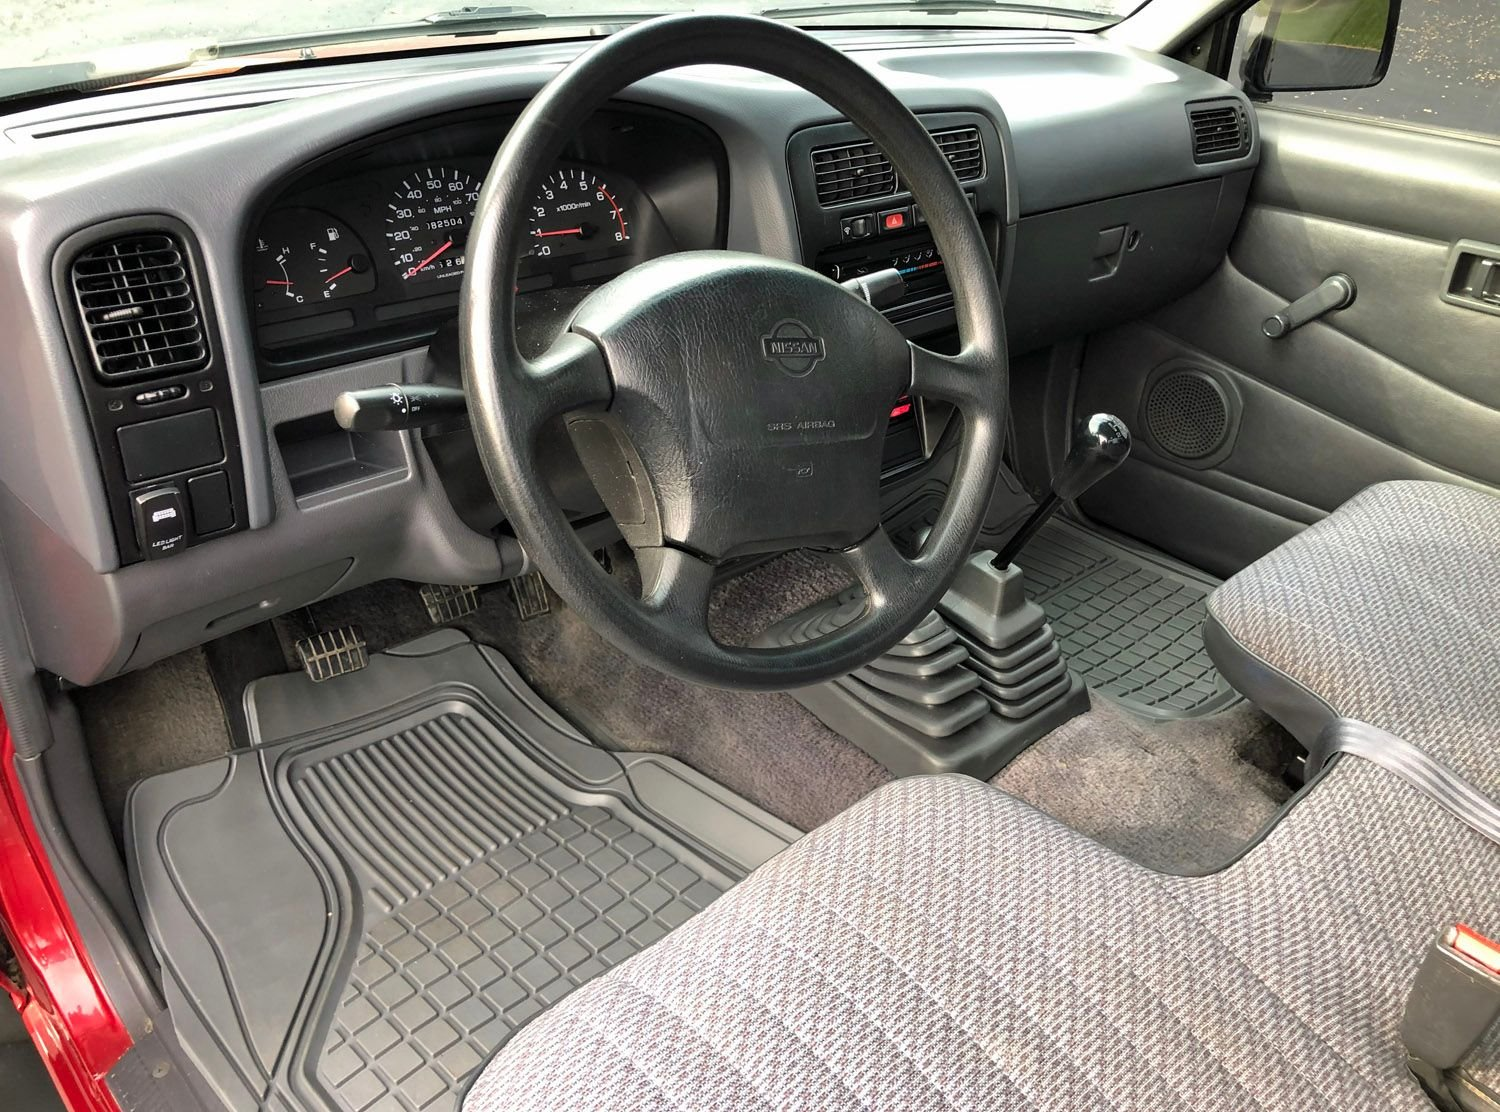 1997 Nissan XE Pick-up Truck